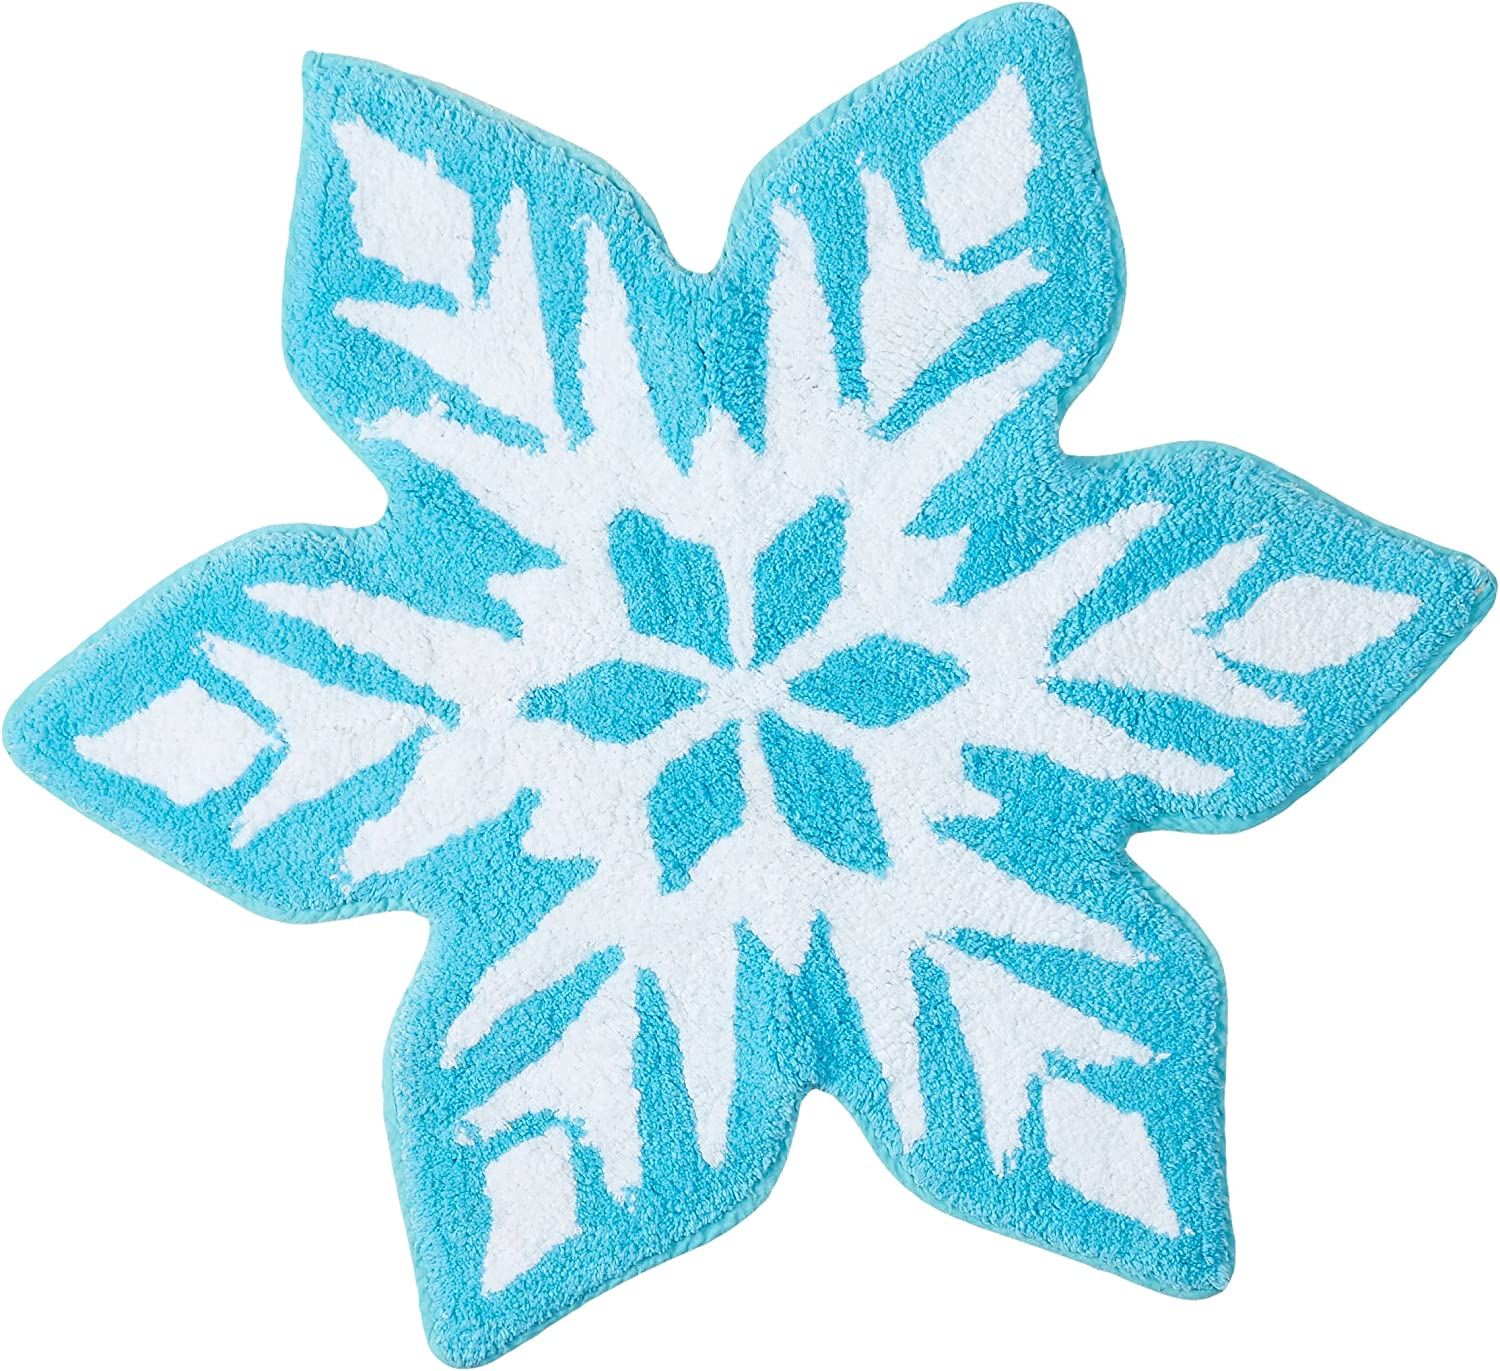 Disney Frozen Snowflake Cotton Tufted Bath Rug